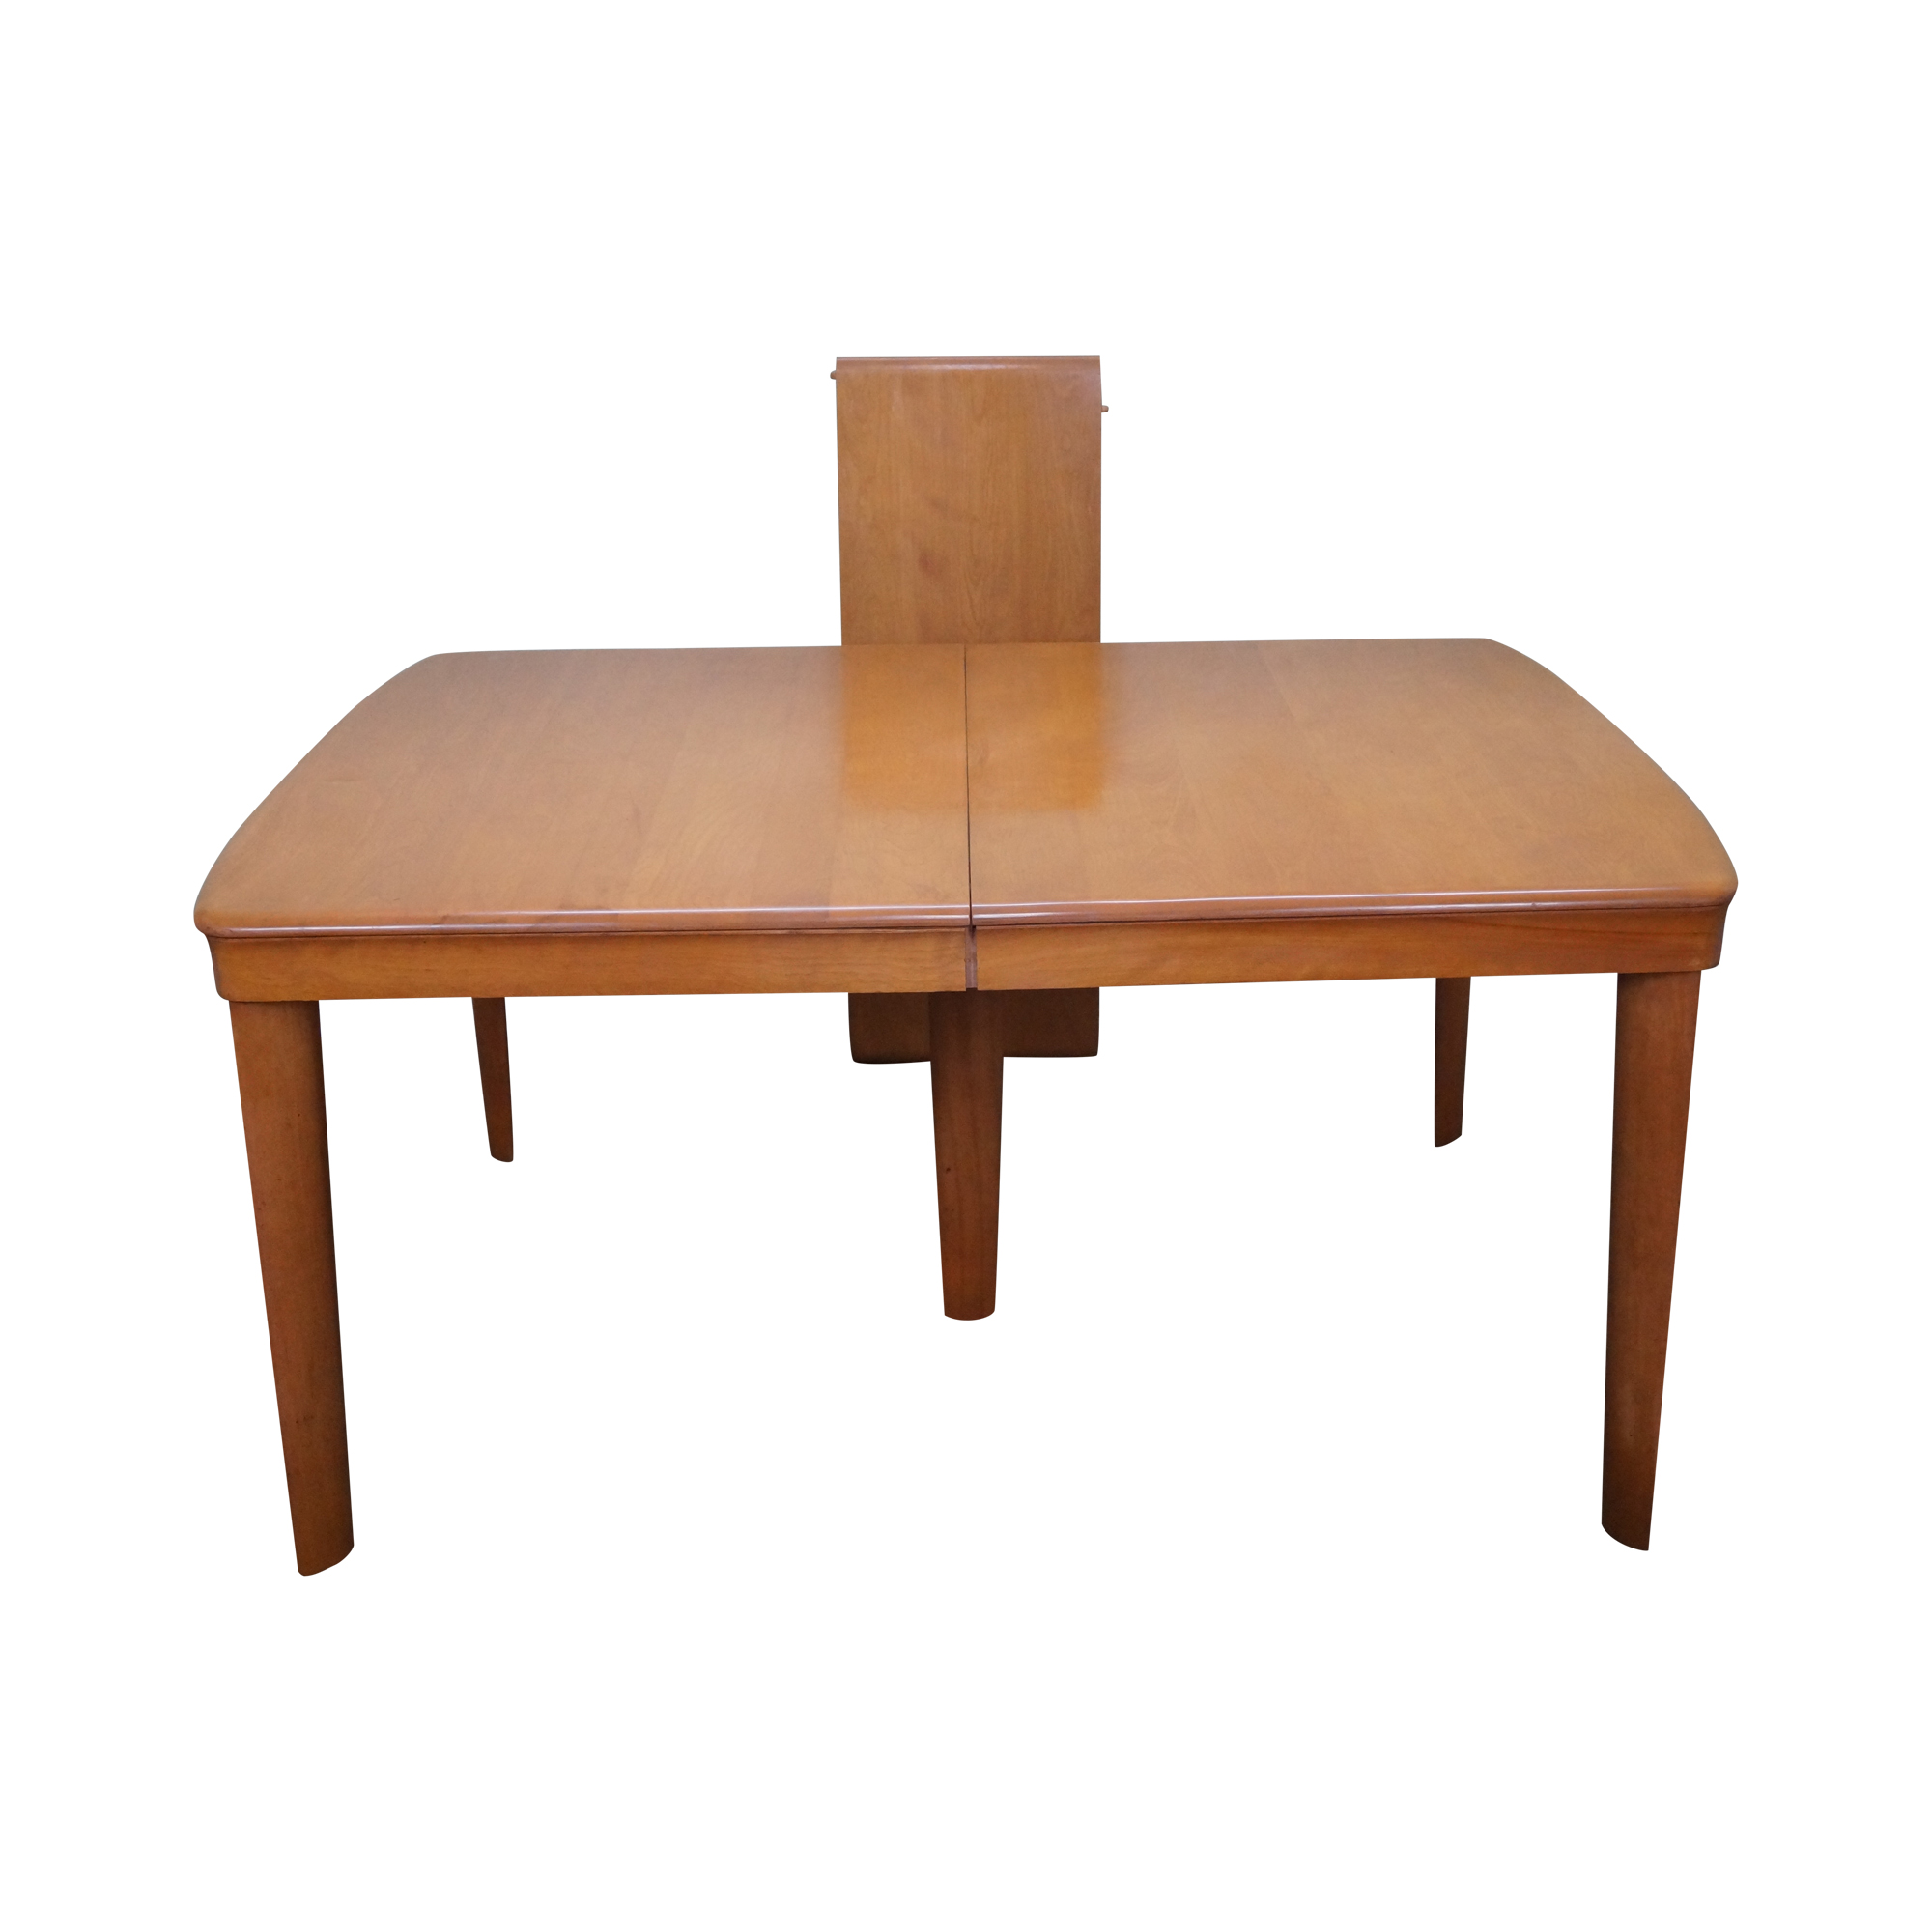 Heywood Wakefield Champagne Maple Dining Table